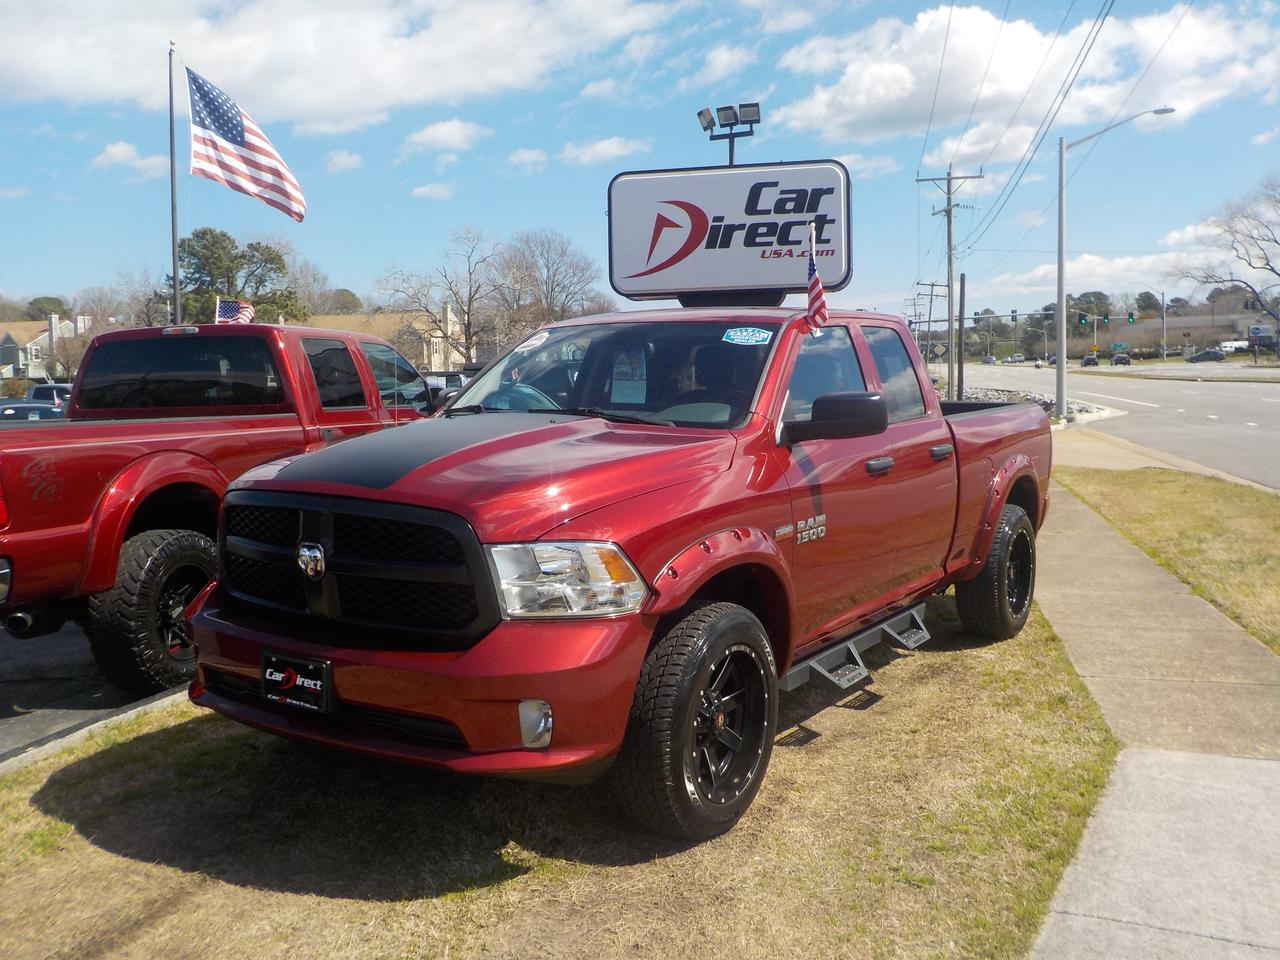 2014 Dodge Ram 1500 Express Quad Cab 4wd Warranty Lifted